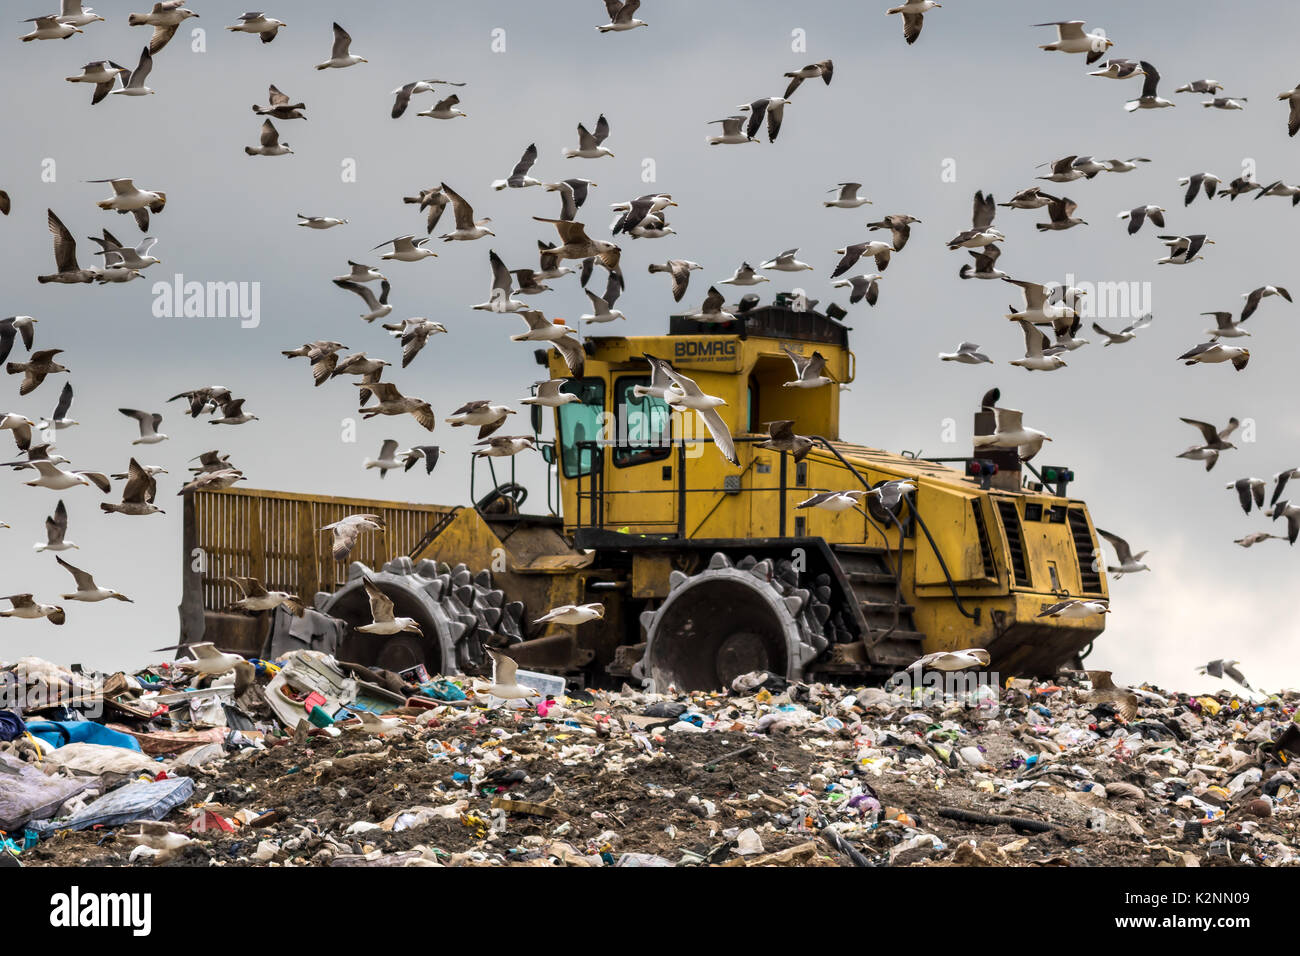 Birds searching for food mob a landfill bulldozer - Stock Image